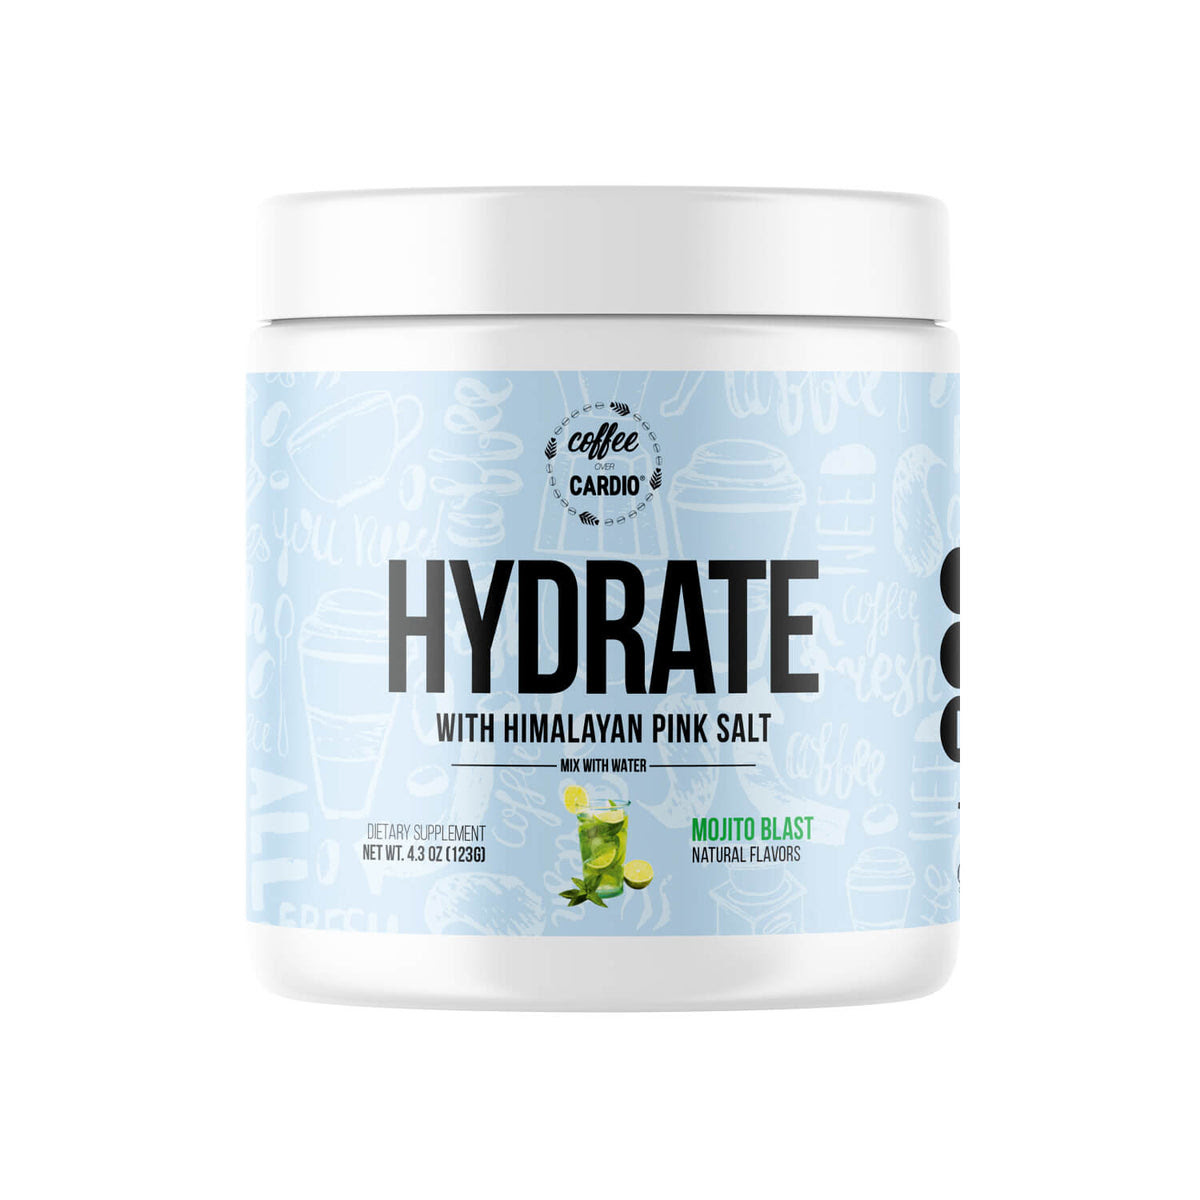 HYDRATE with Himalayan Sea Salt is the newest addition to ...